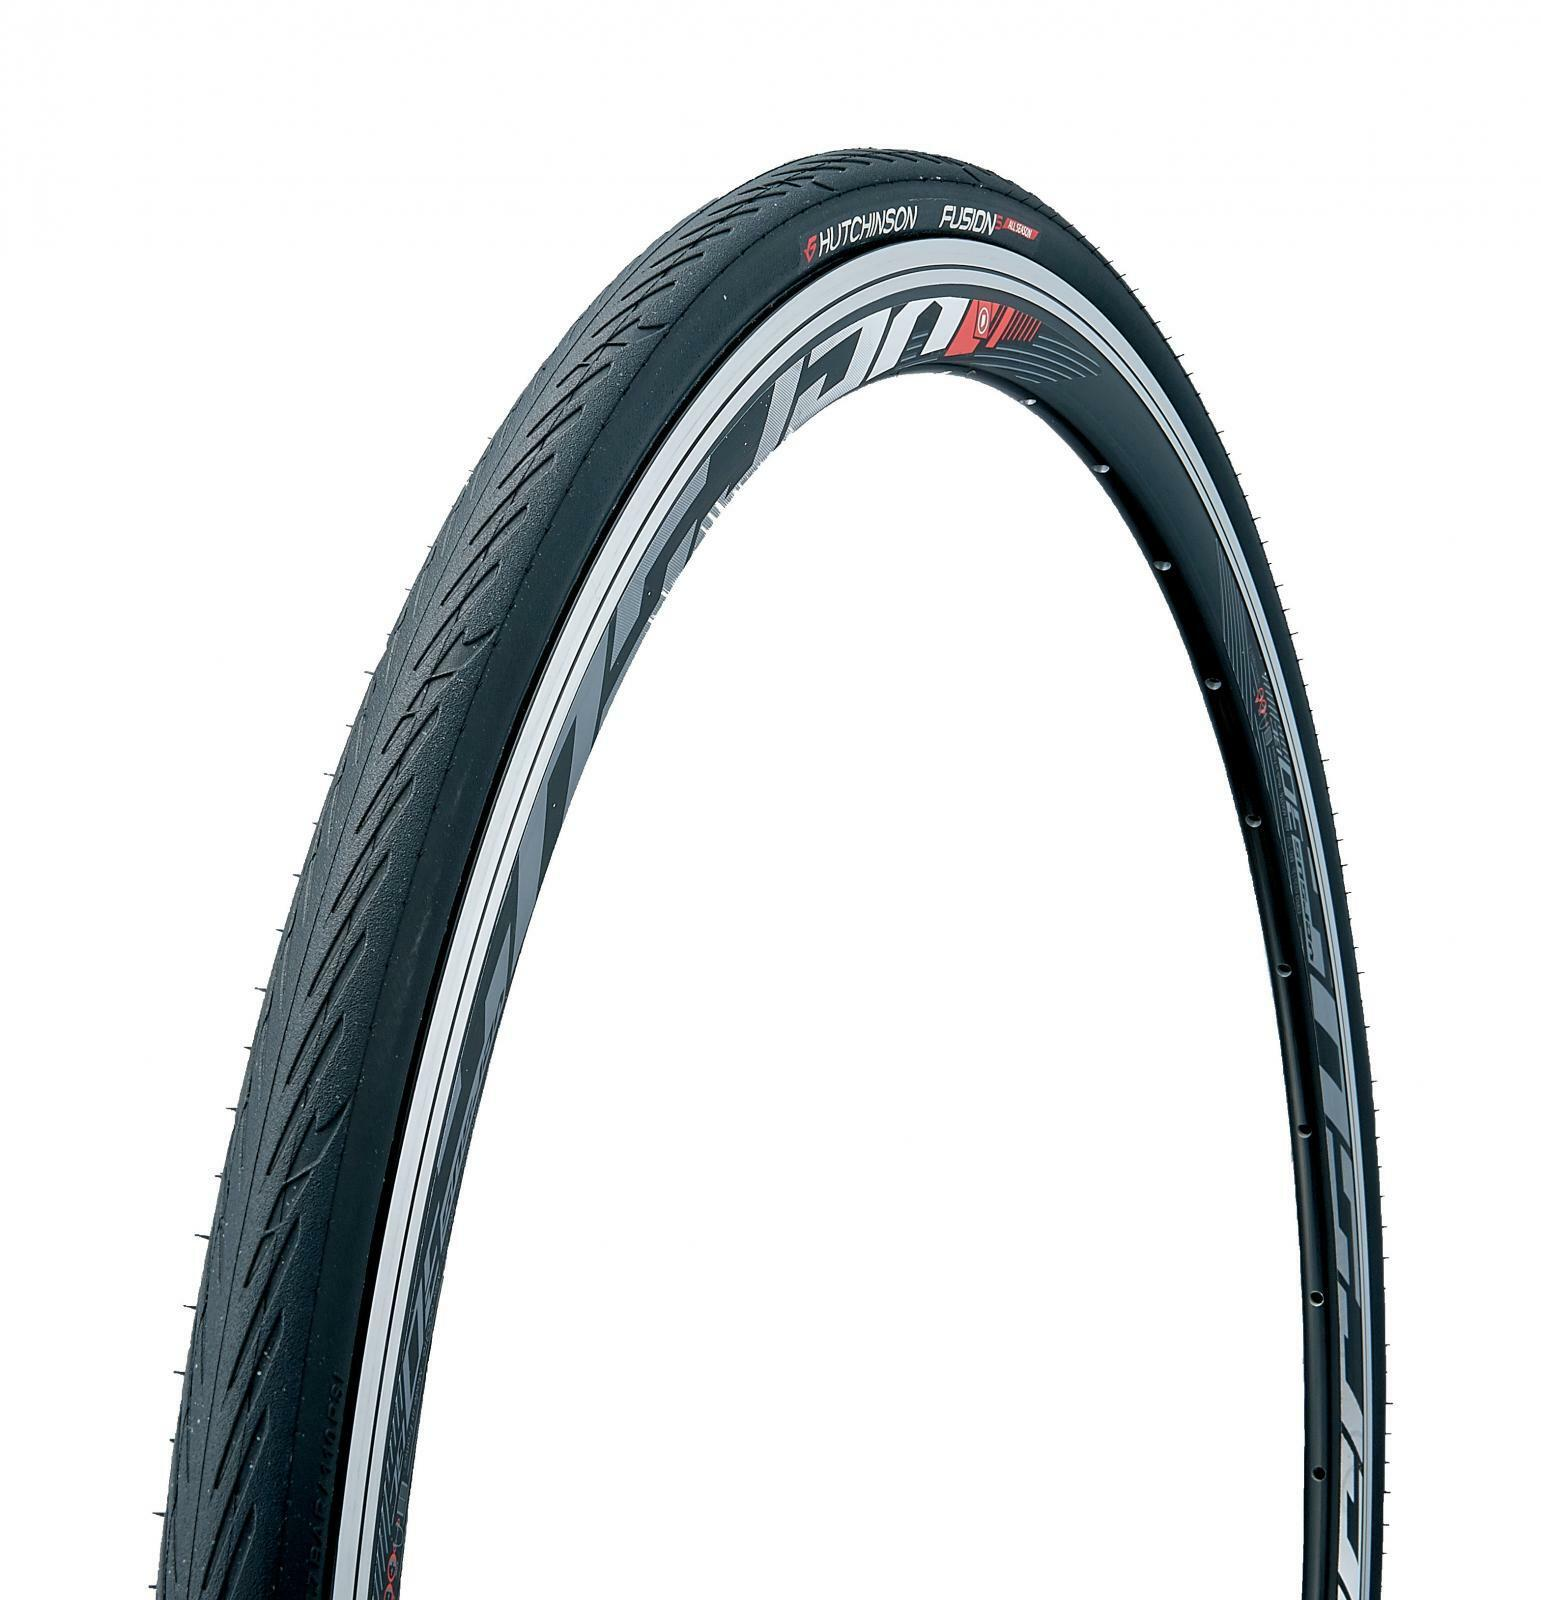 Hut nson  Fusion 5 All Seasons 11 Storm Road Tyre NOT TUBELESS  clearance